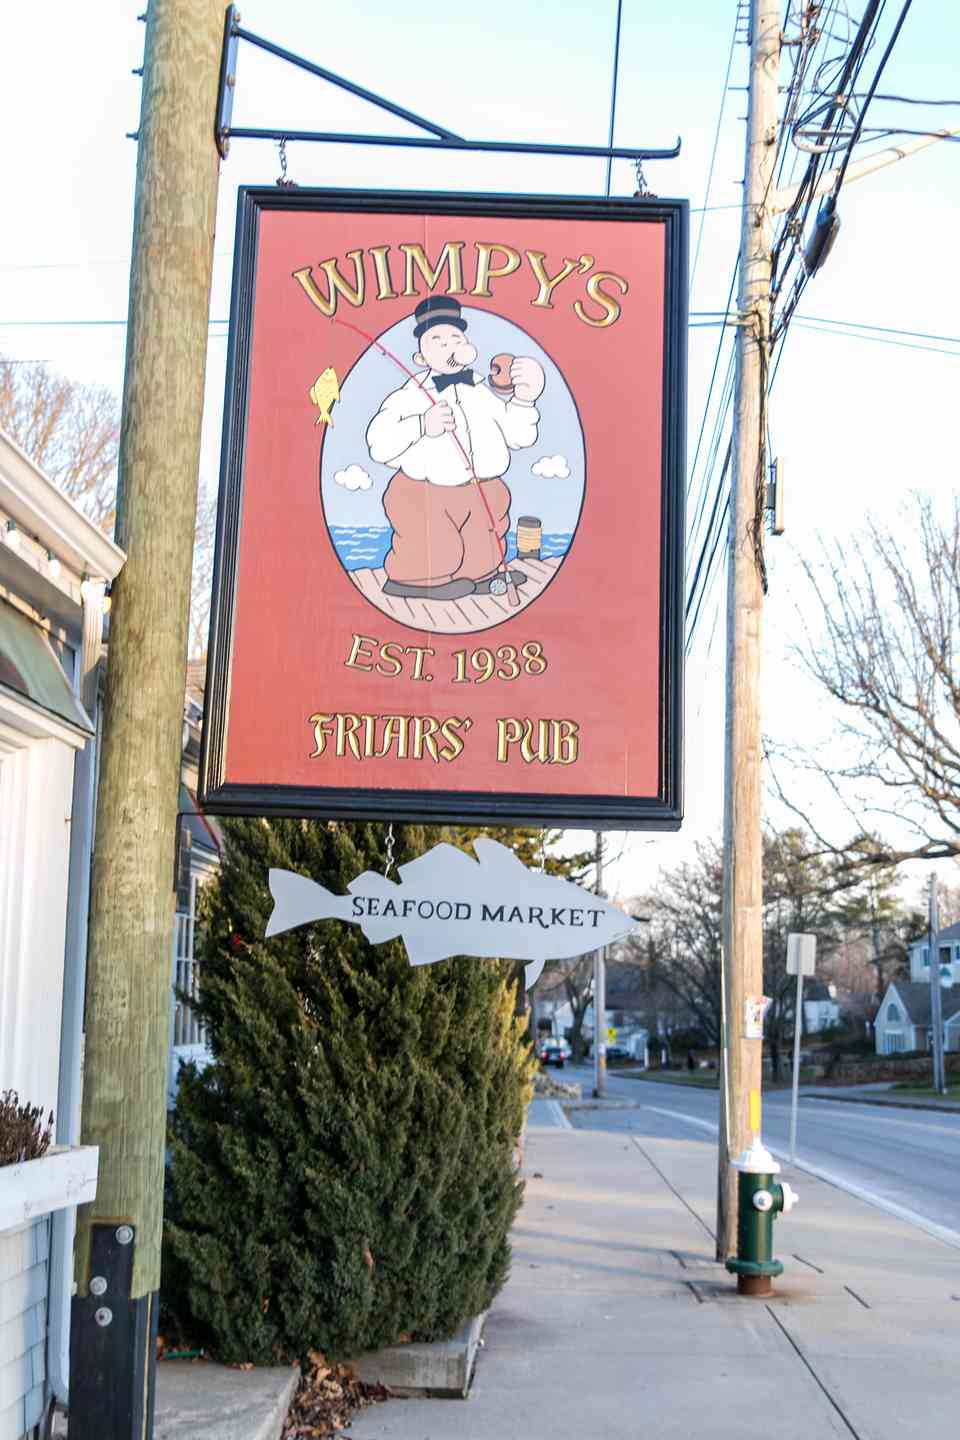 Wimpy's sign